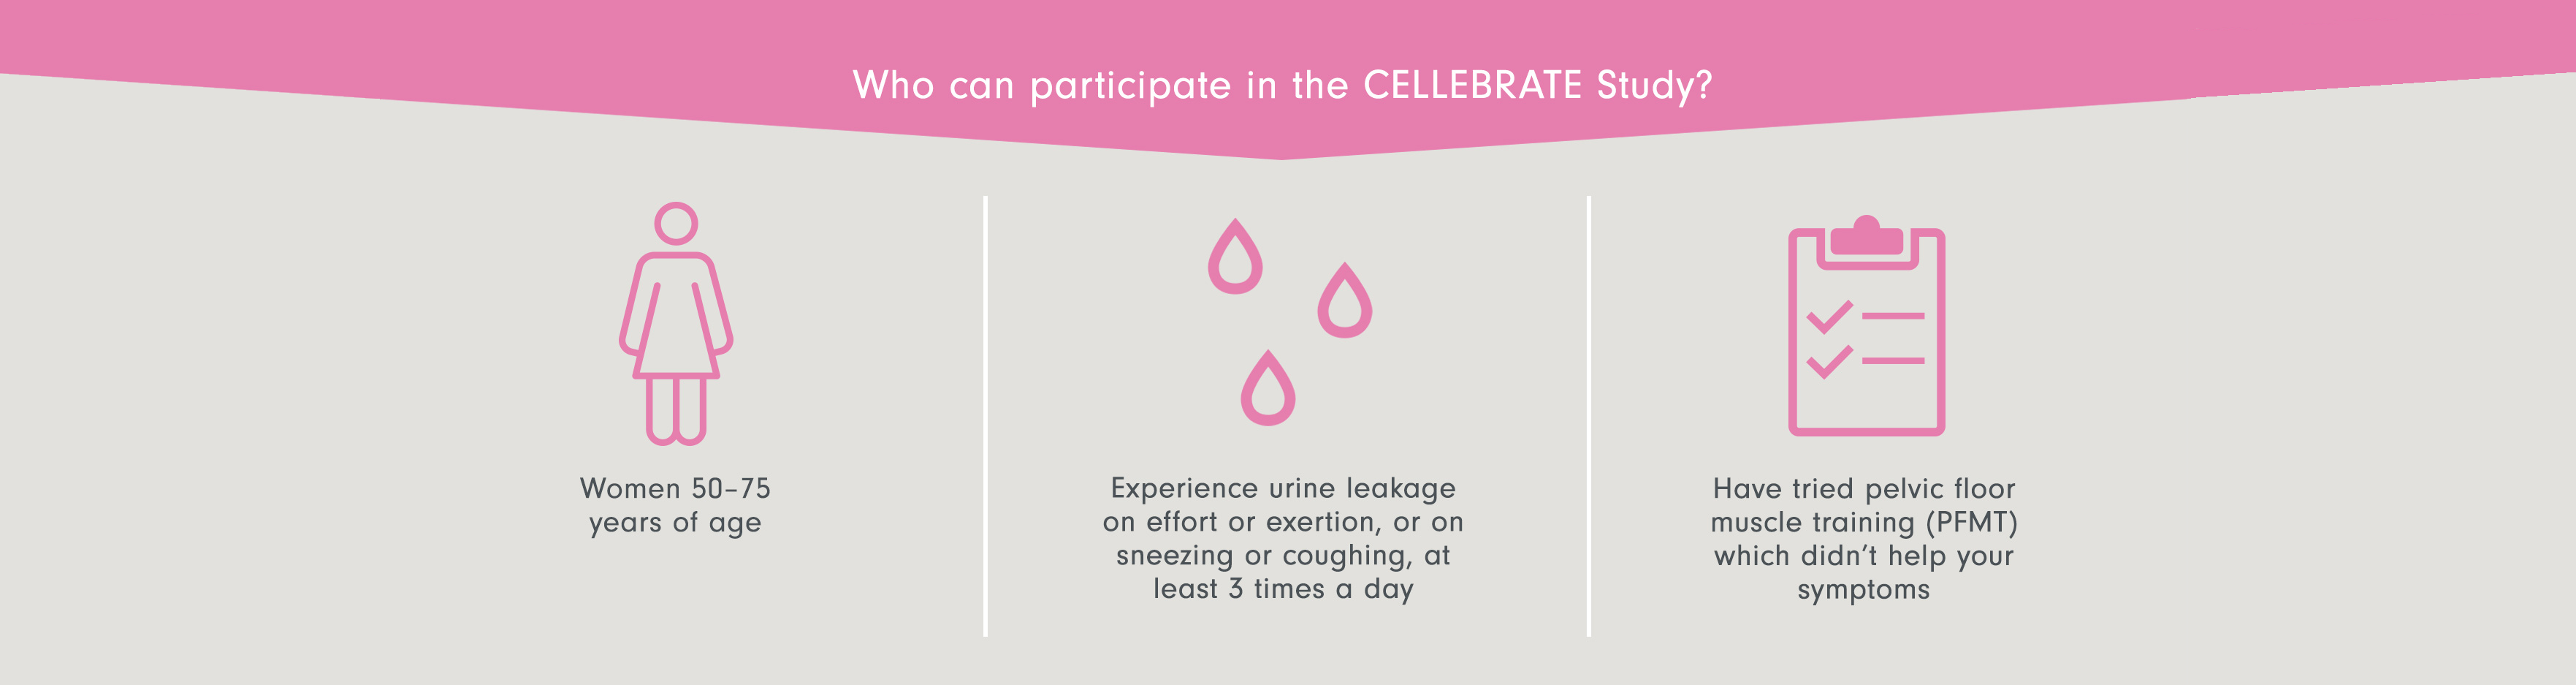 Who Can Participate in the CELLEBRATE Study? Women 50-75 years of age. Experience urine leakage on effort or exertion, or on sneezing or coughing, at least 3 times a day; Have tried pelvic floor muscle training (PFMT) which didn't help your symptoms.